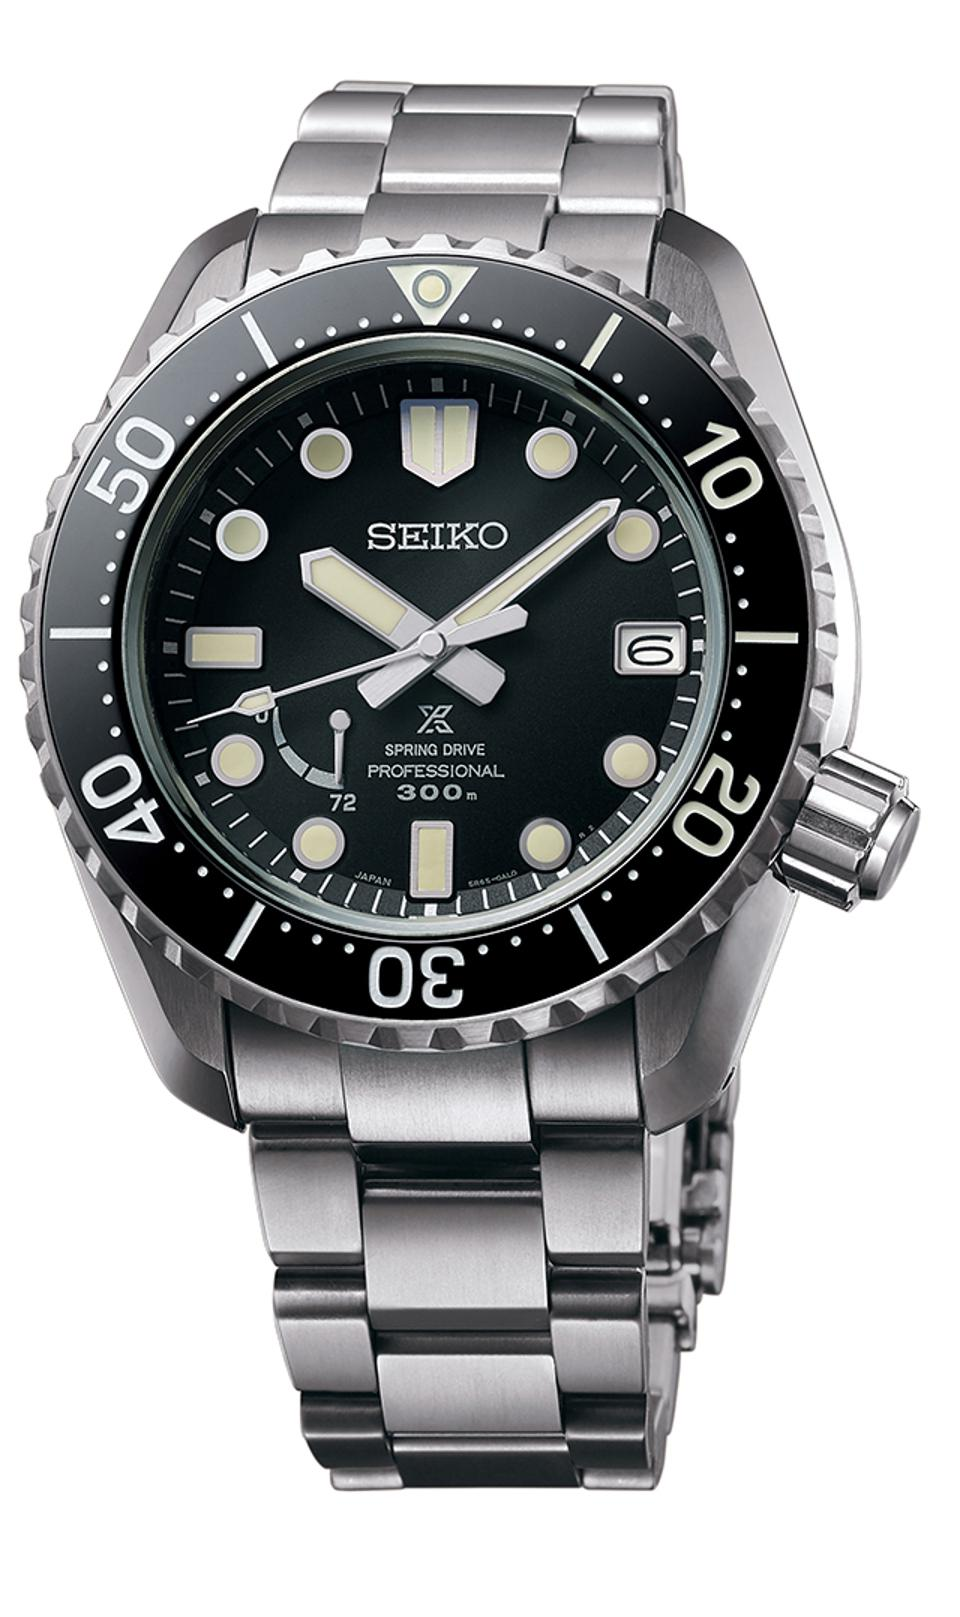 Seiko took the diver's watch prize for the Prospex LX, a nod to Seiko's first diver's watch, introduced in 1968. It is water resistant to 300 meters.